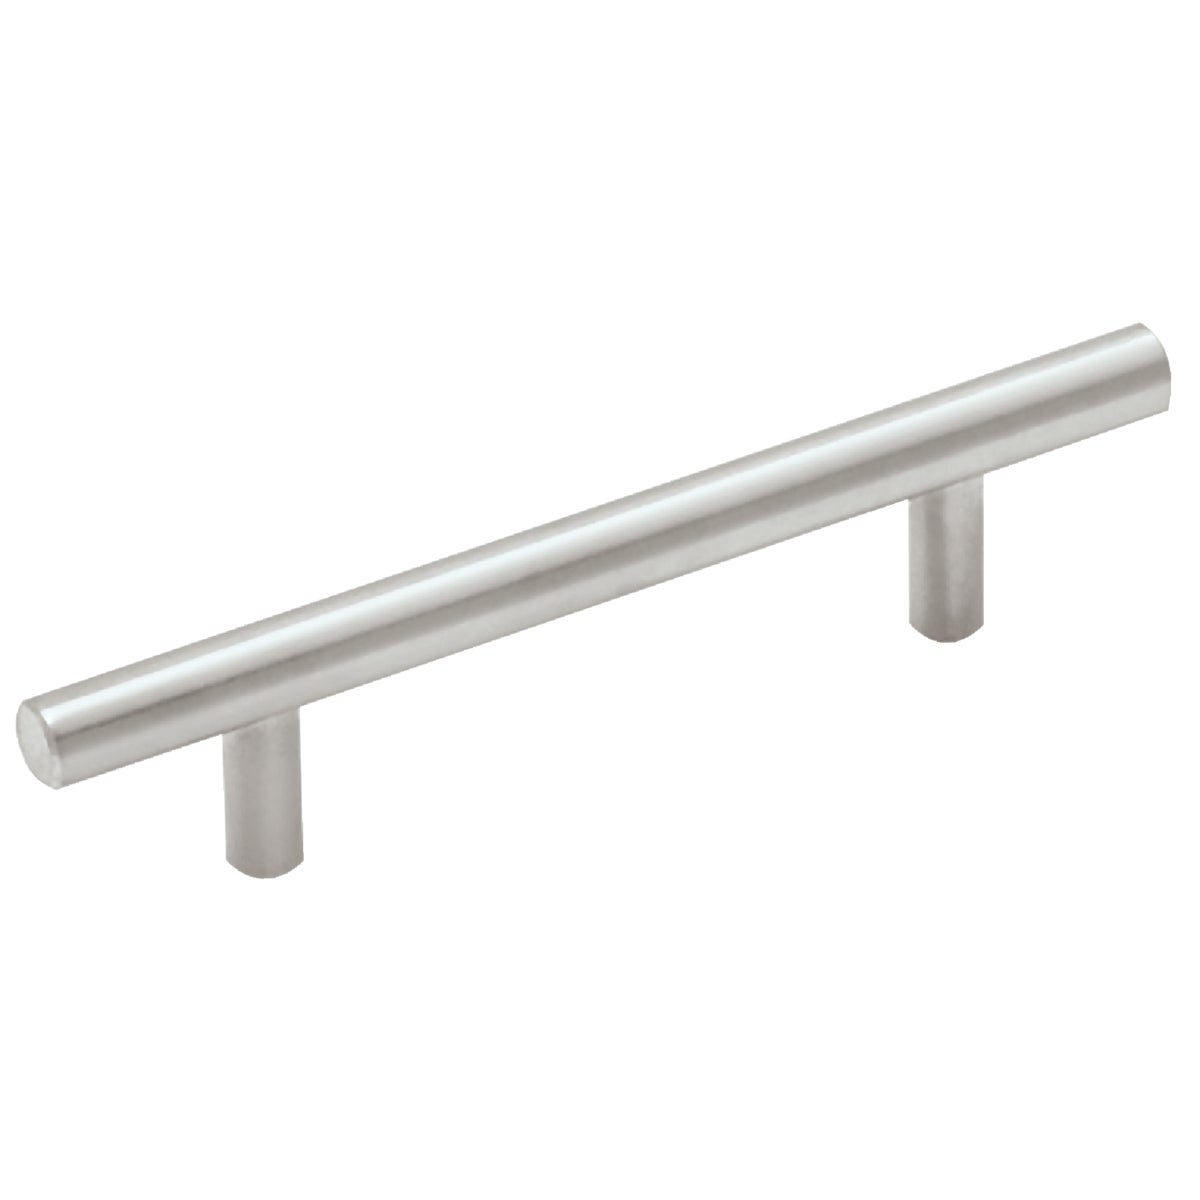 STAINLESS STEEL PULL - BP19011-SS by Amerock Corporation